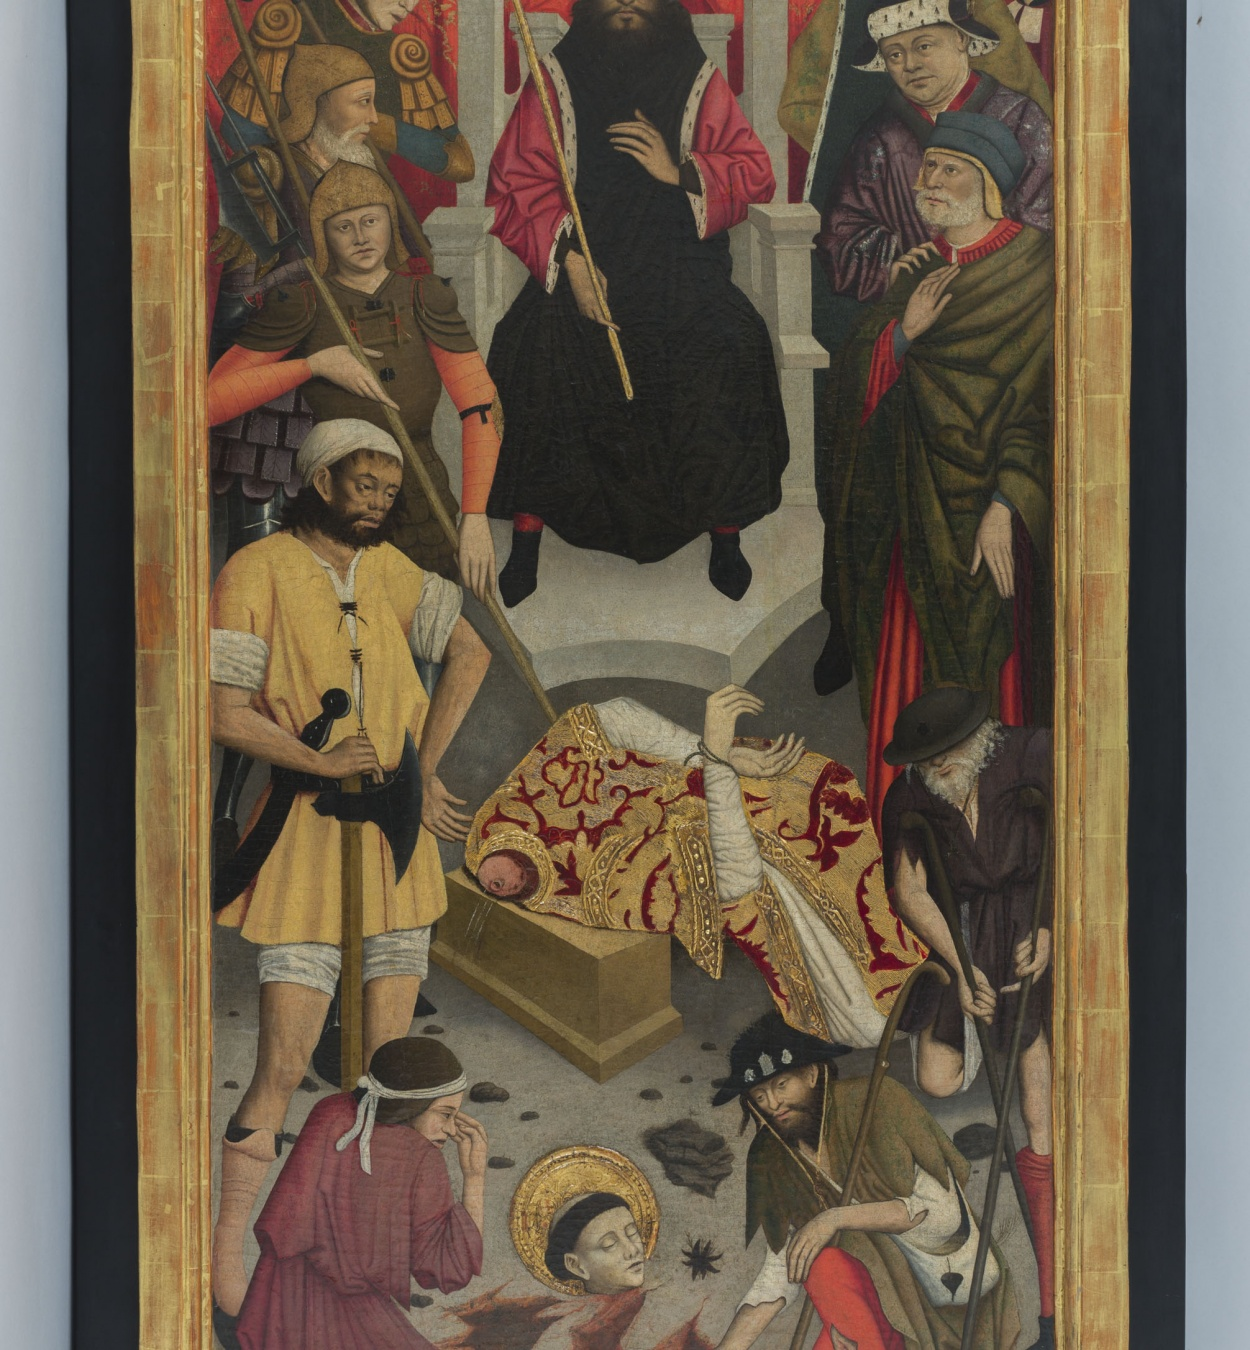 Lluís Dalmau - The Beheading of Saint Baudilus - circa 1448